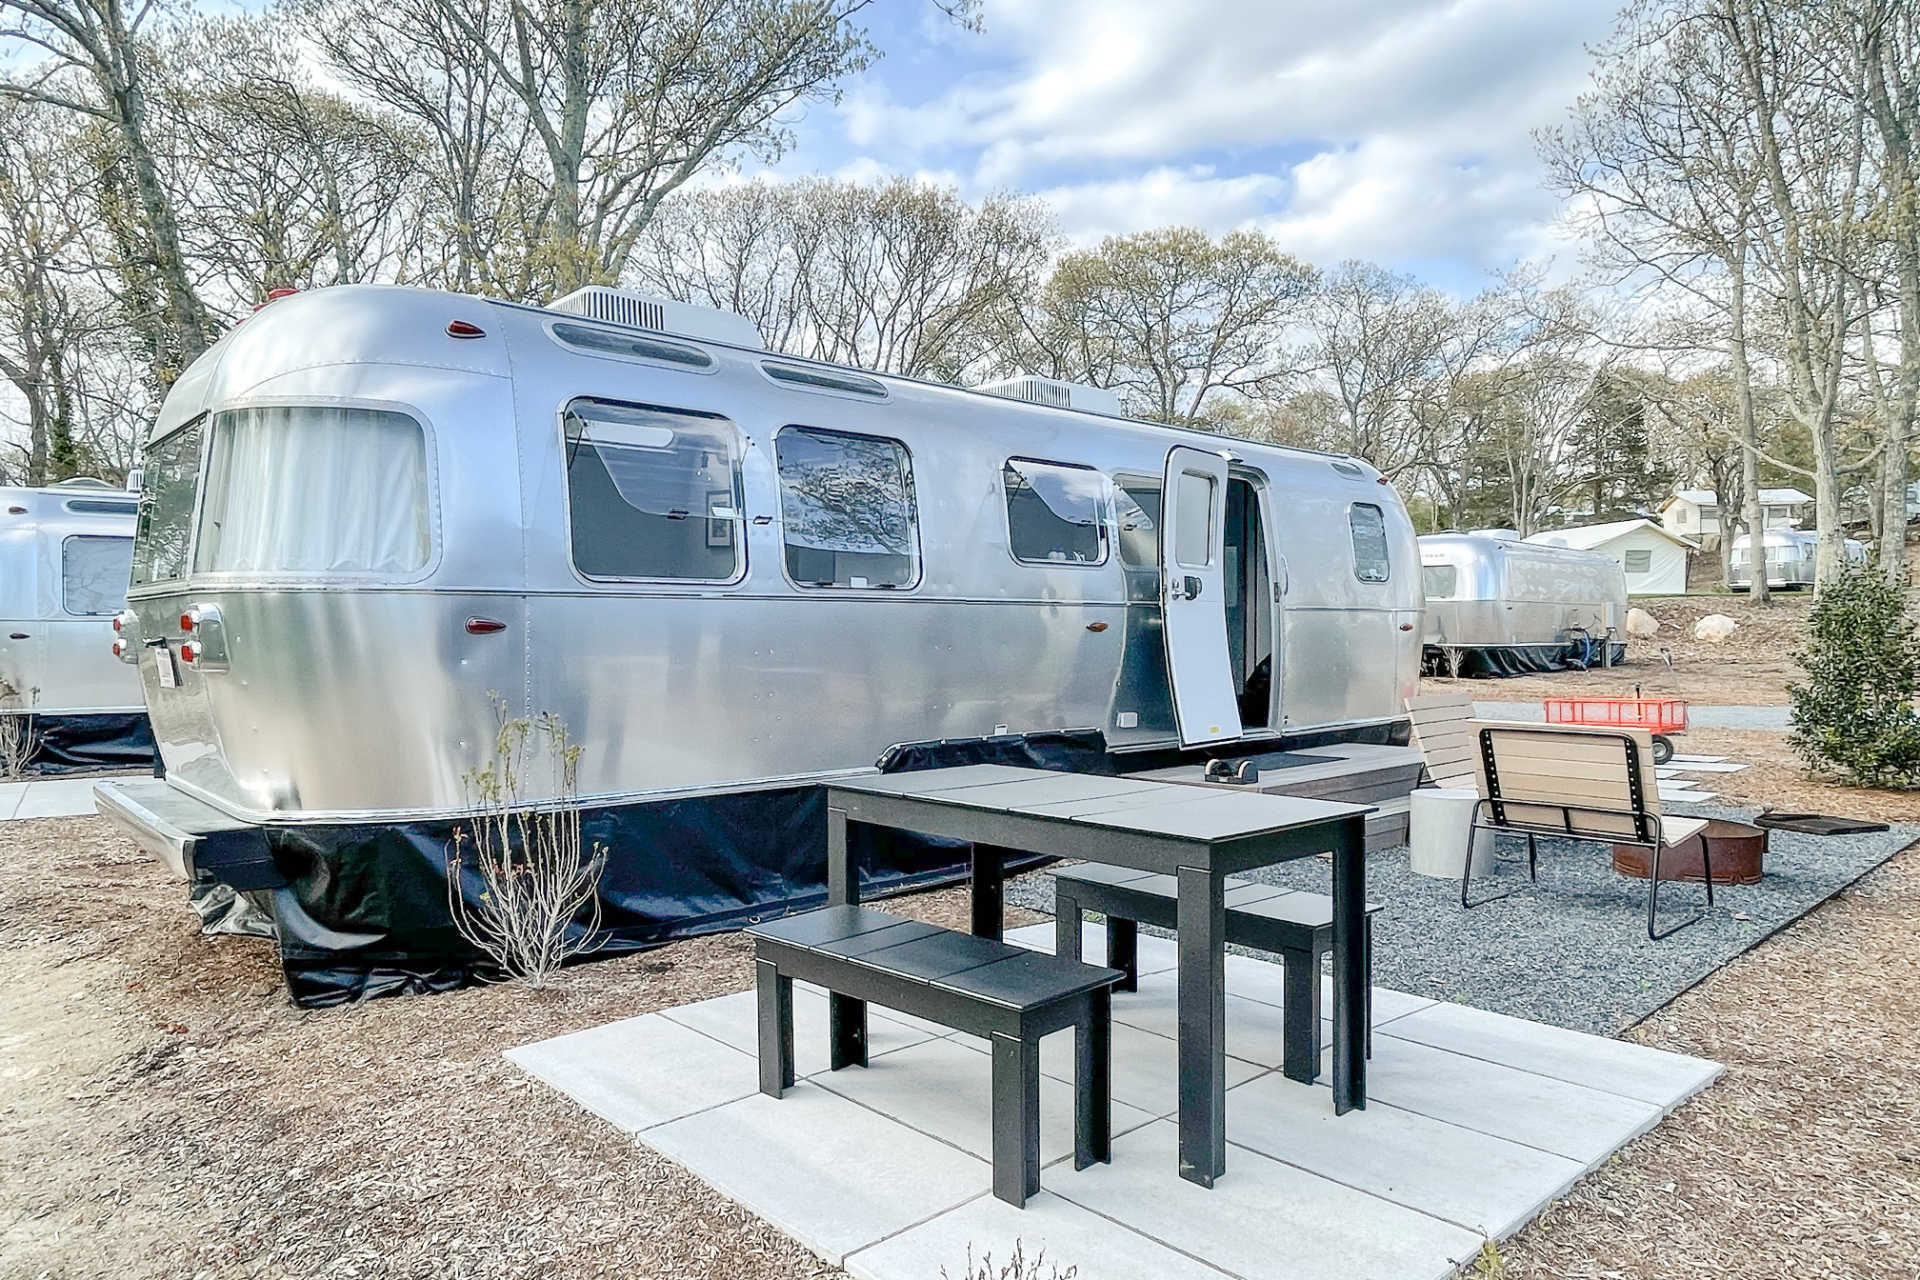 Airstream Glamping at Auto Camp Cape Cod is the Hot New Thing